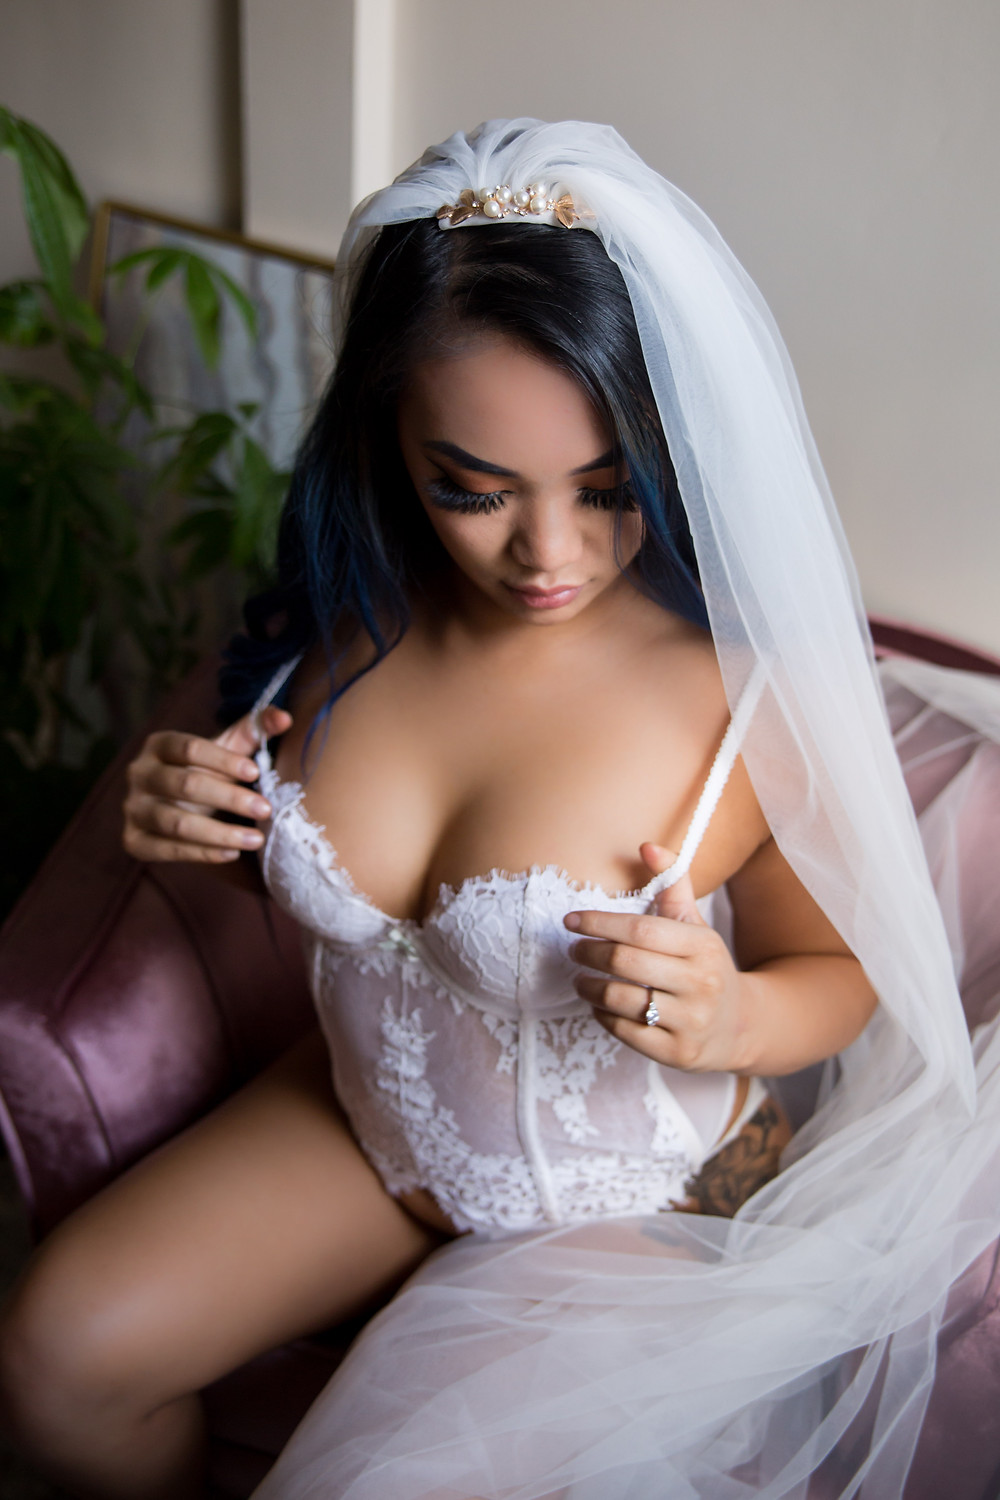 sexy lingerie boudoir photo best wedding gift idea Buffalo NY